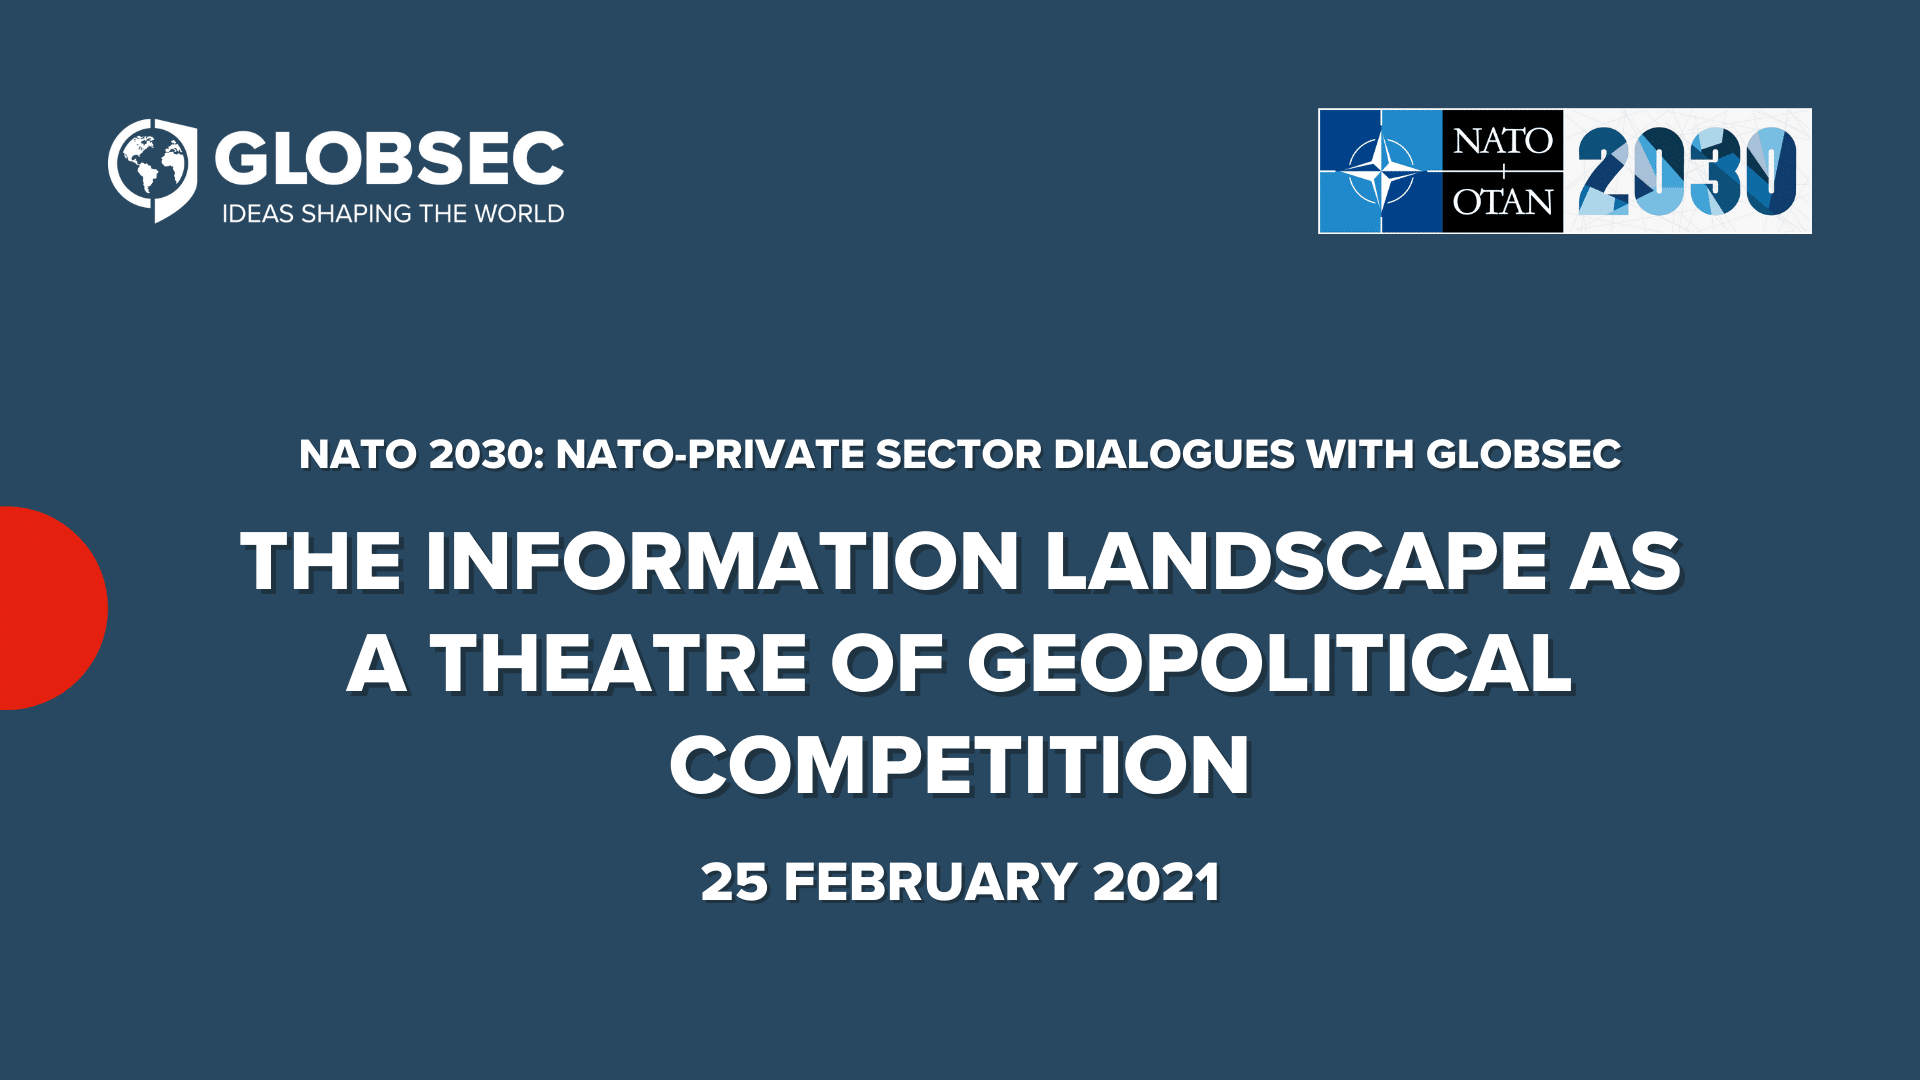 The Information Landscape as a Theatre of Geopolitical Competition